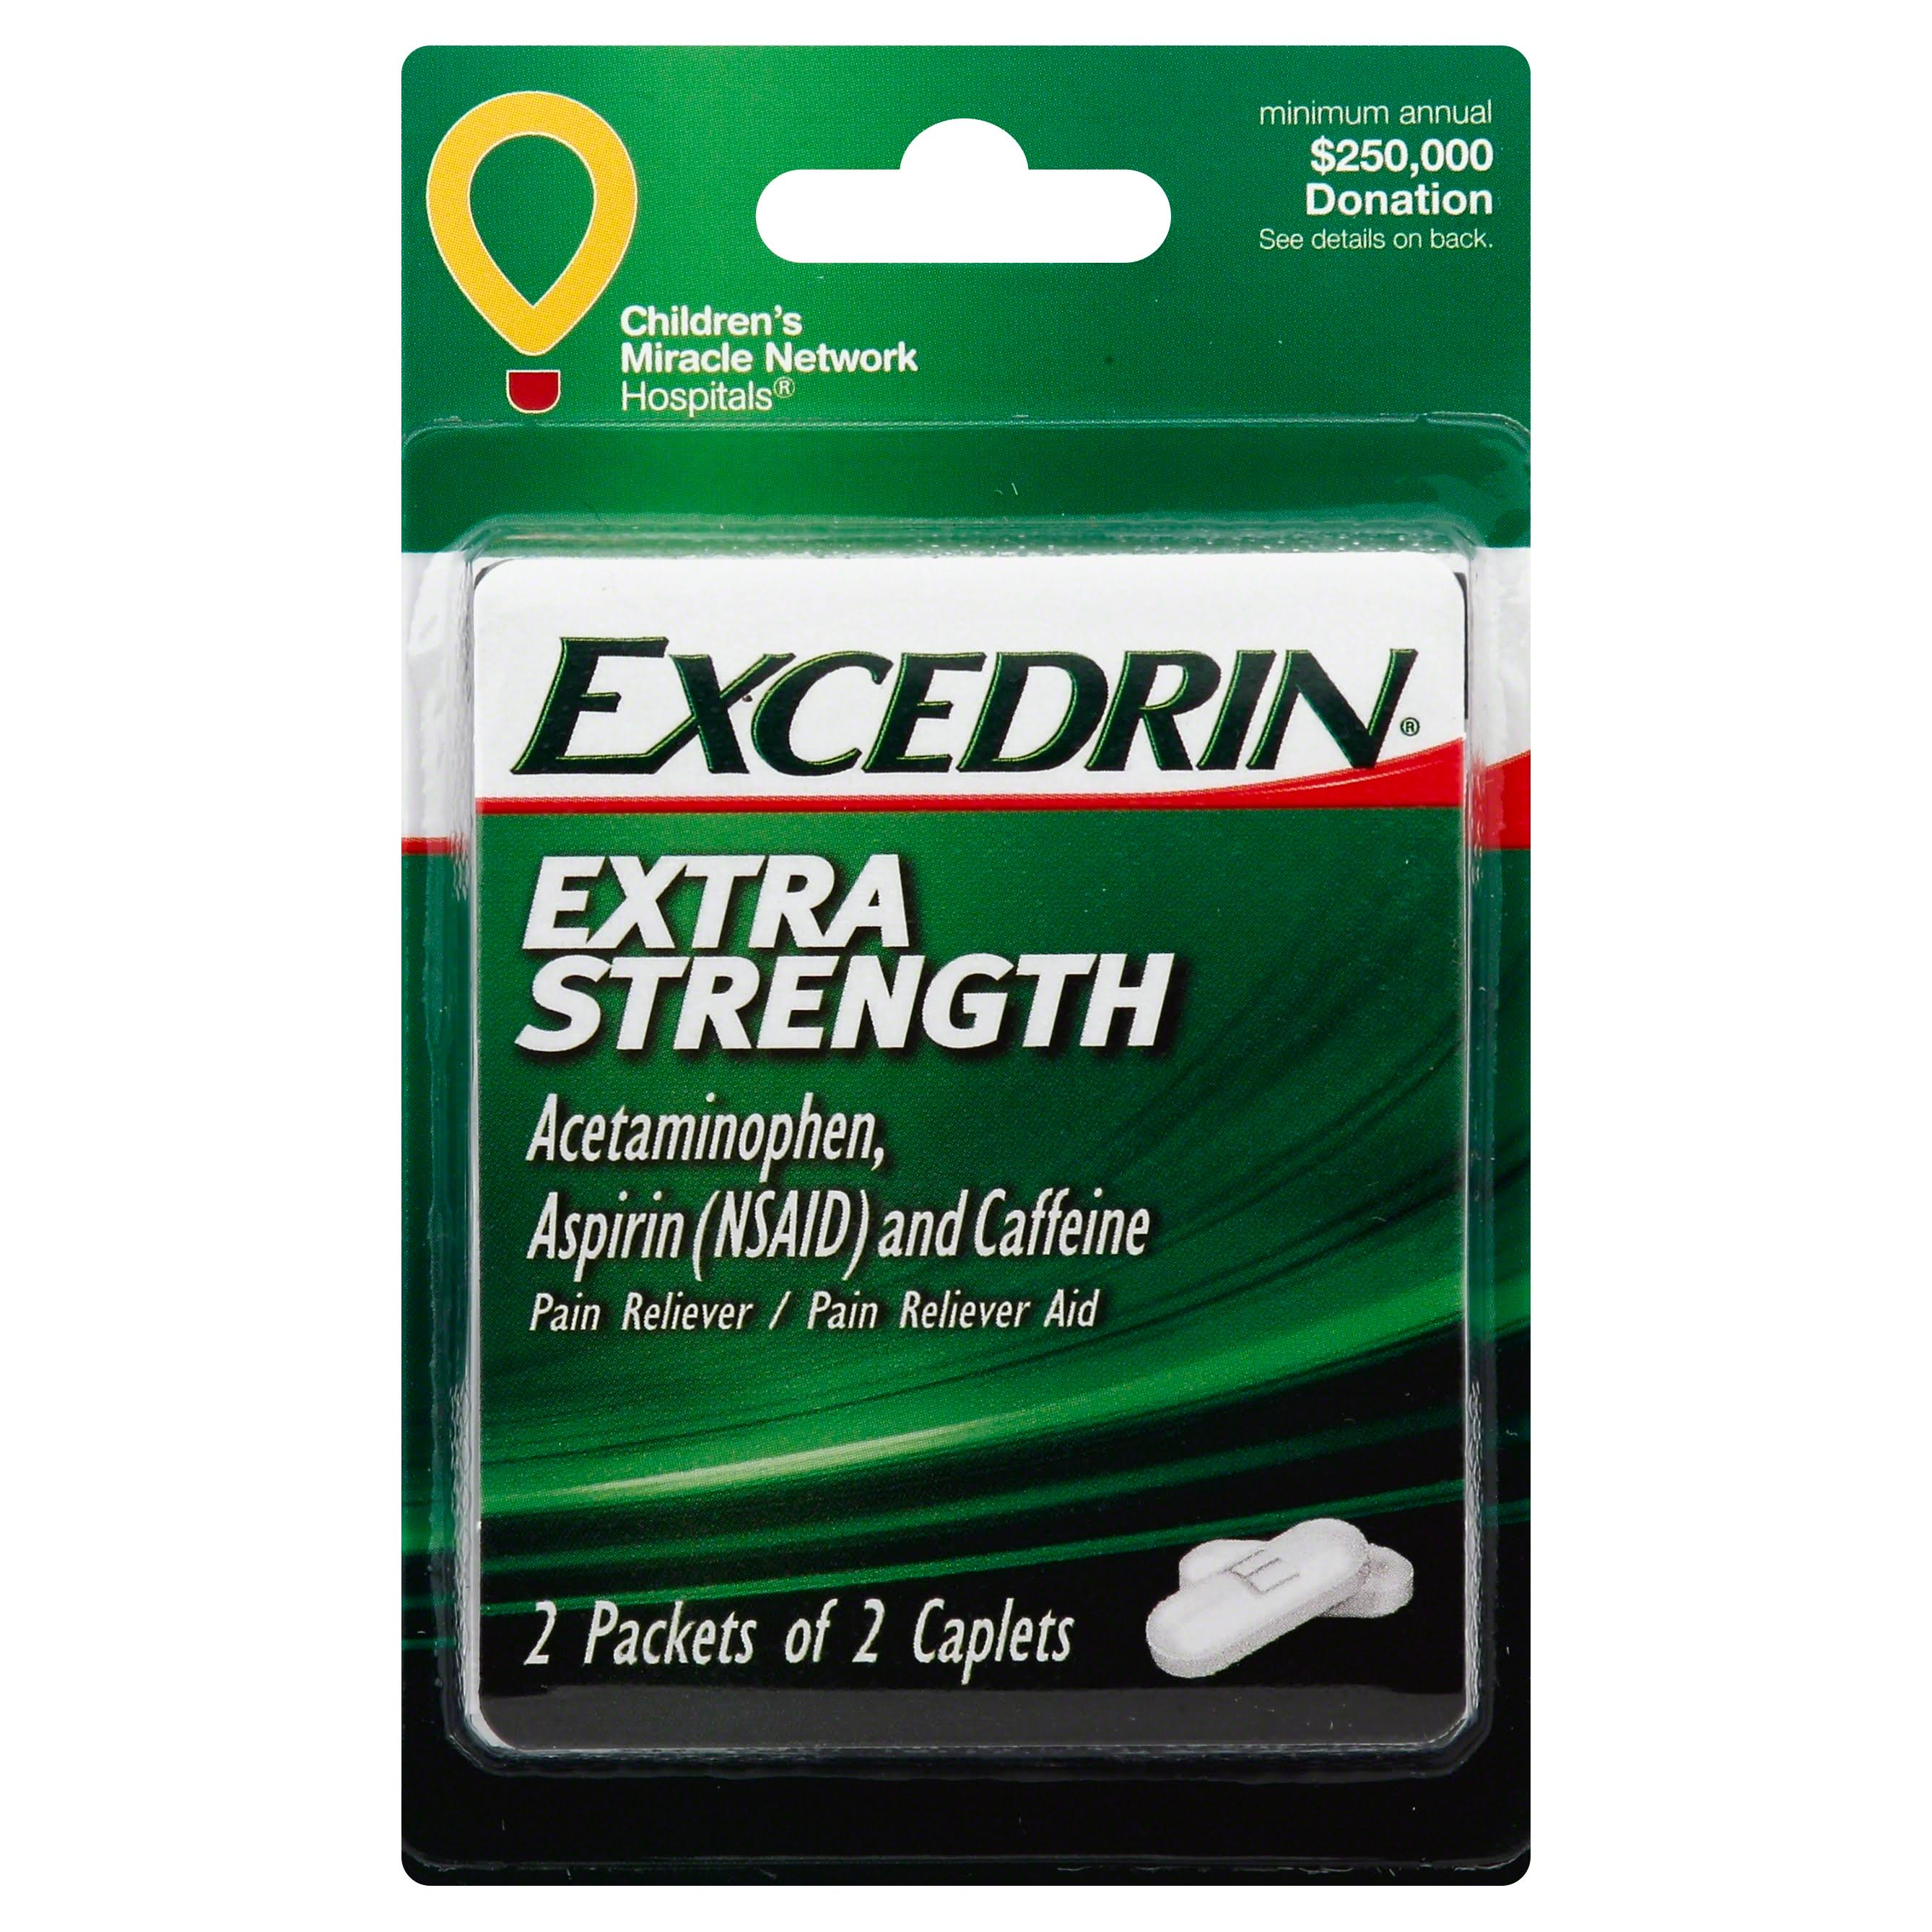 Convenience Valet Excedrin, Extra Strength, Caplets - 2 packets